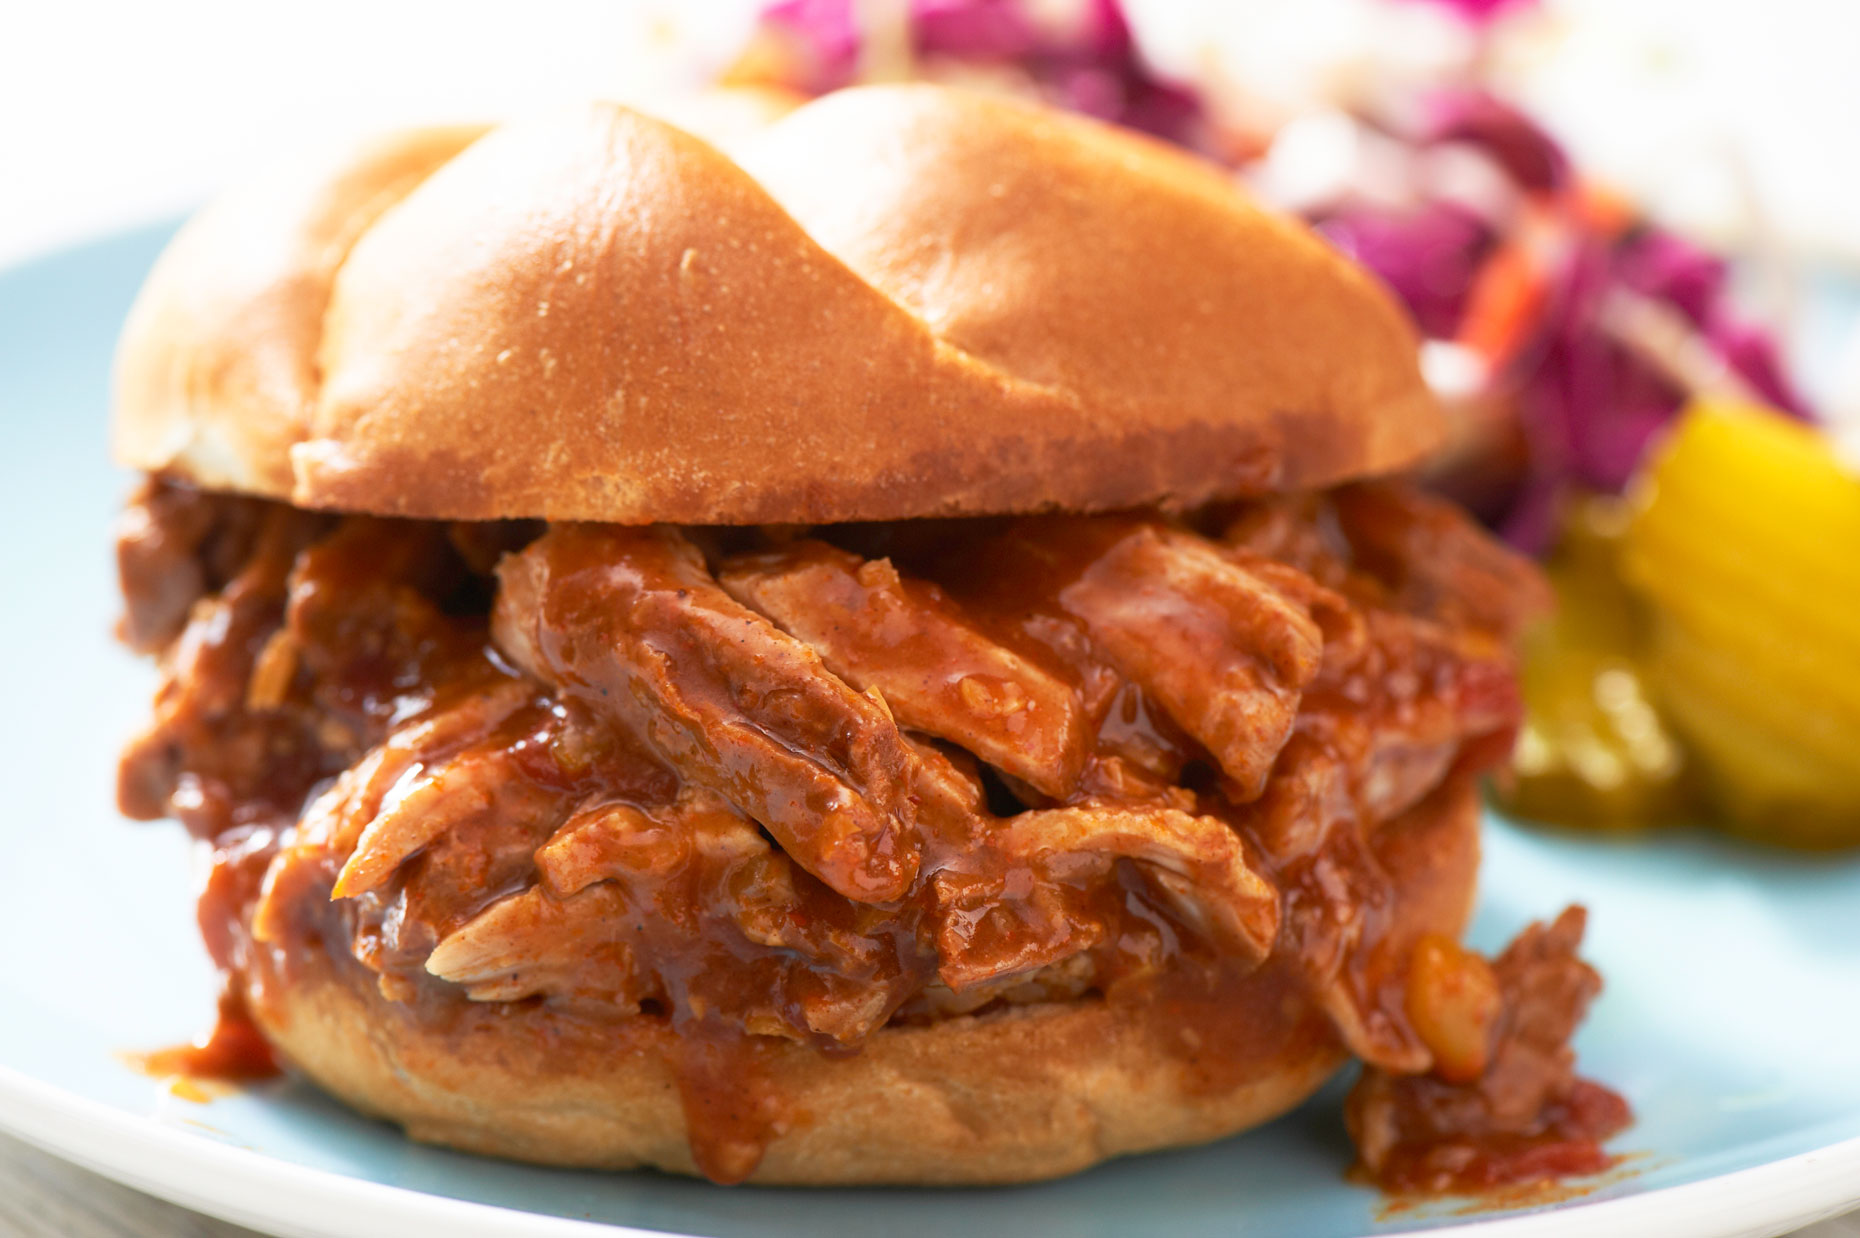 58-Pulled_Pork_Sandwich_0027